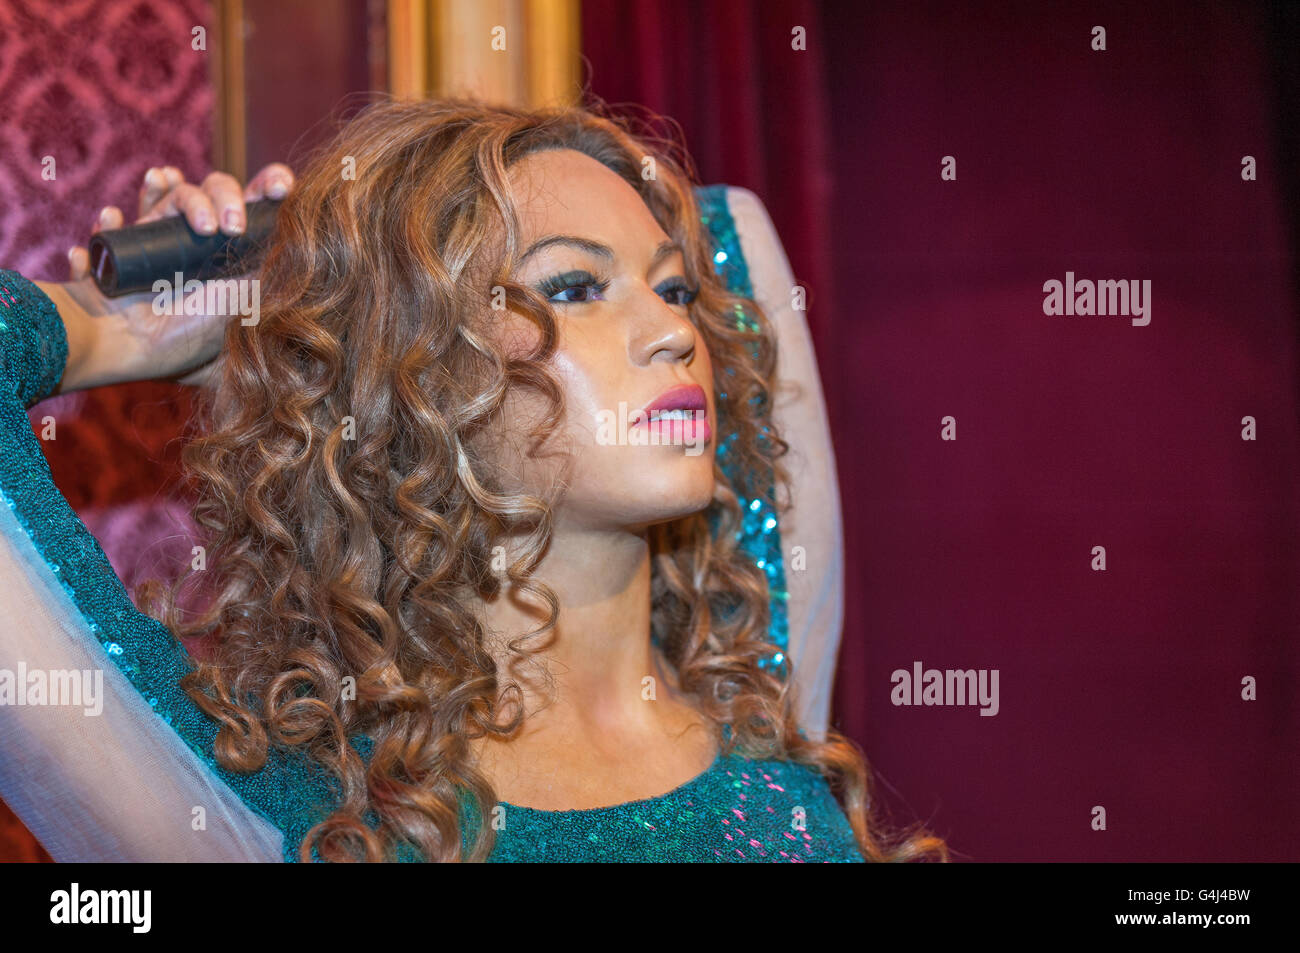 shakira isabel mebarak ripoll wax figure stock photo: 106119437 - alamy